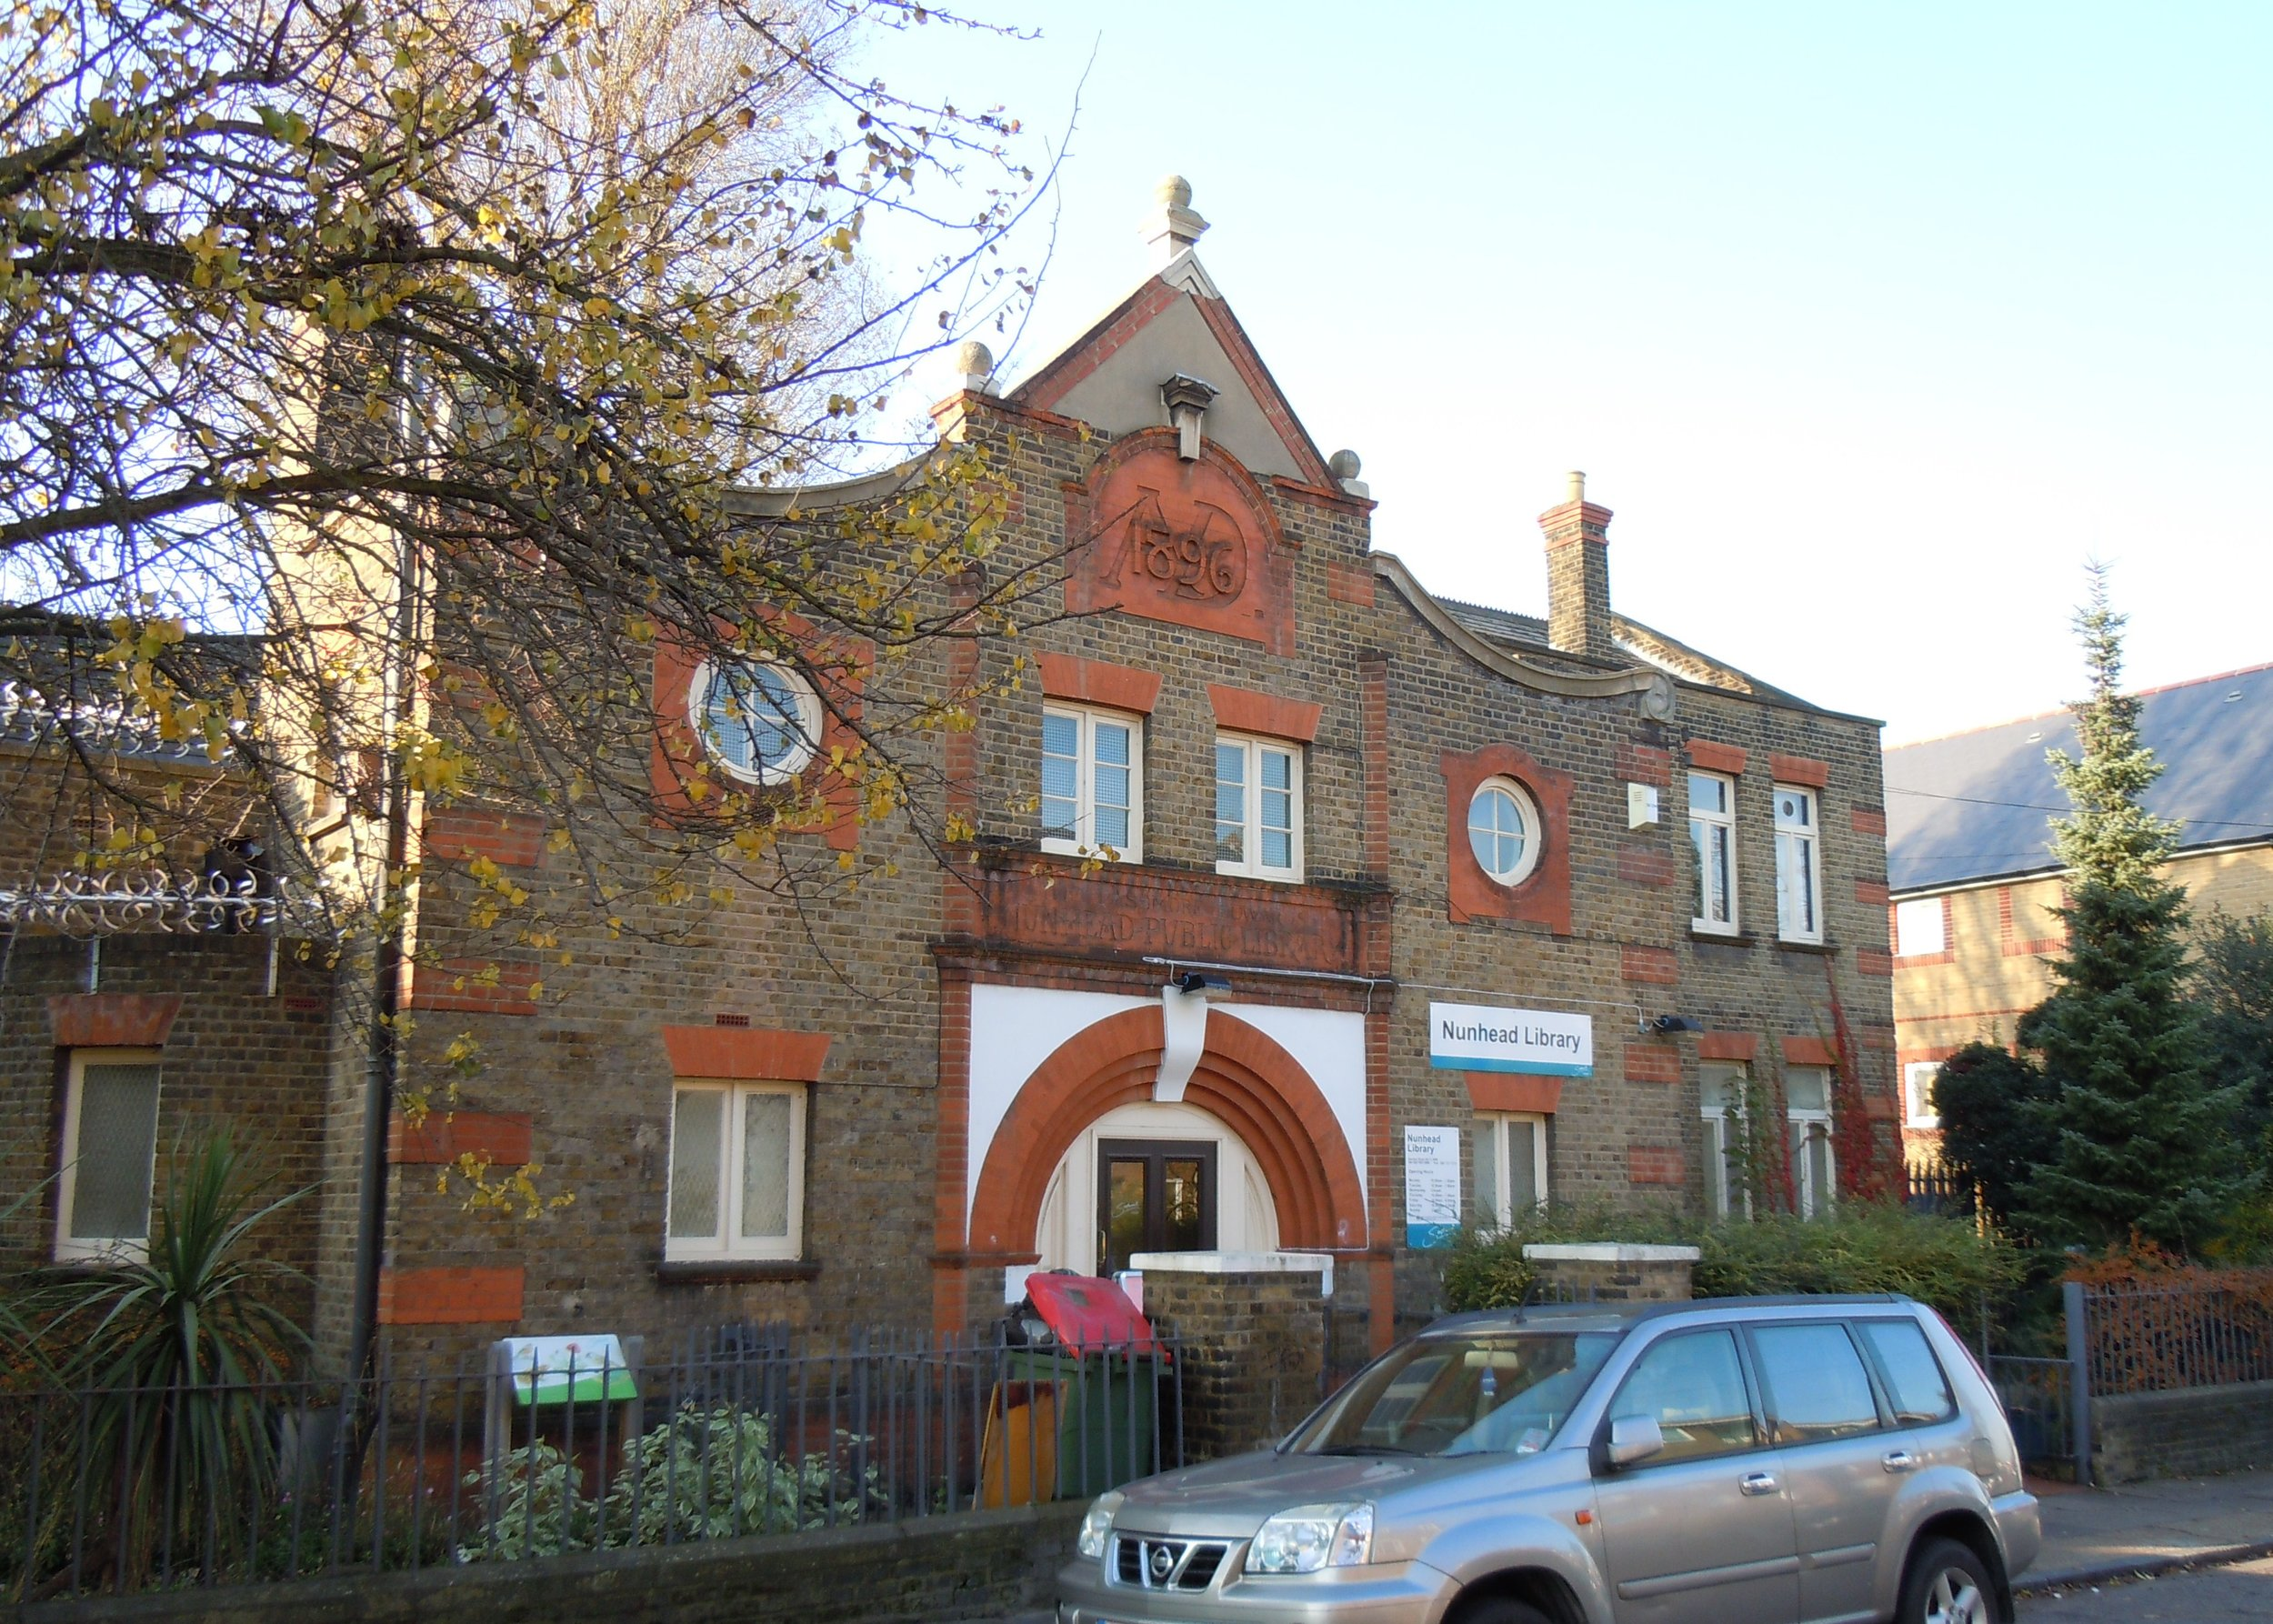 nunhead library south london club